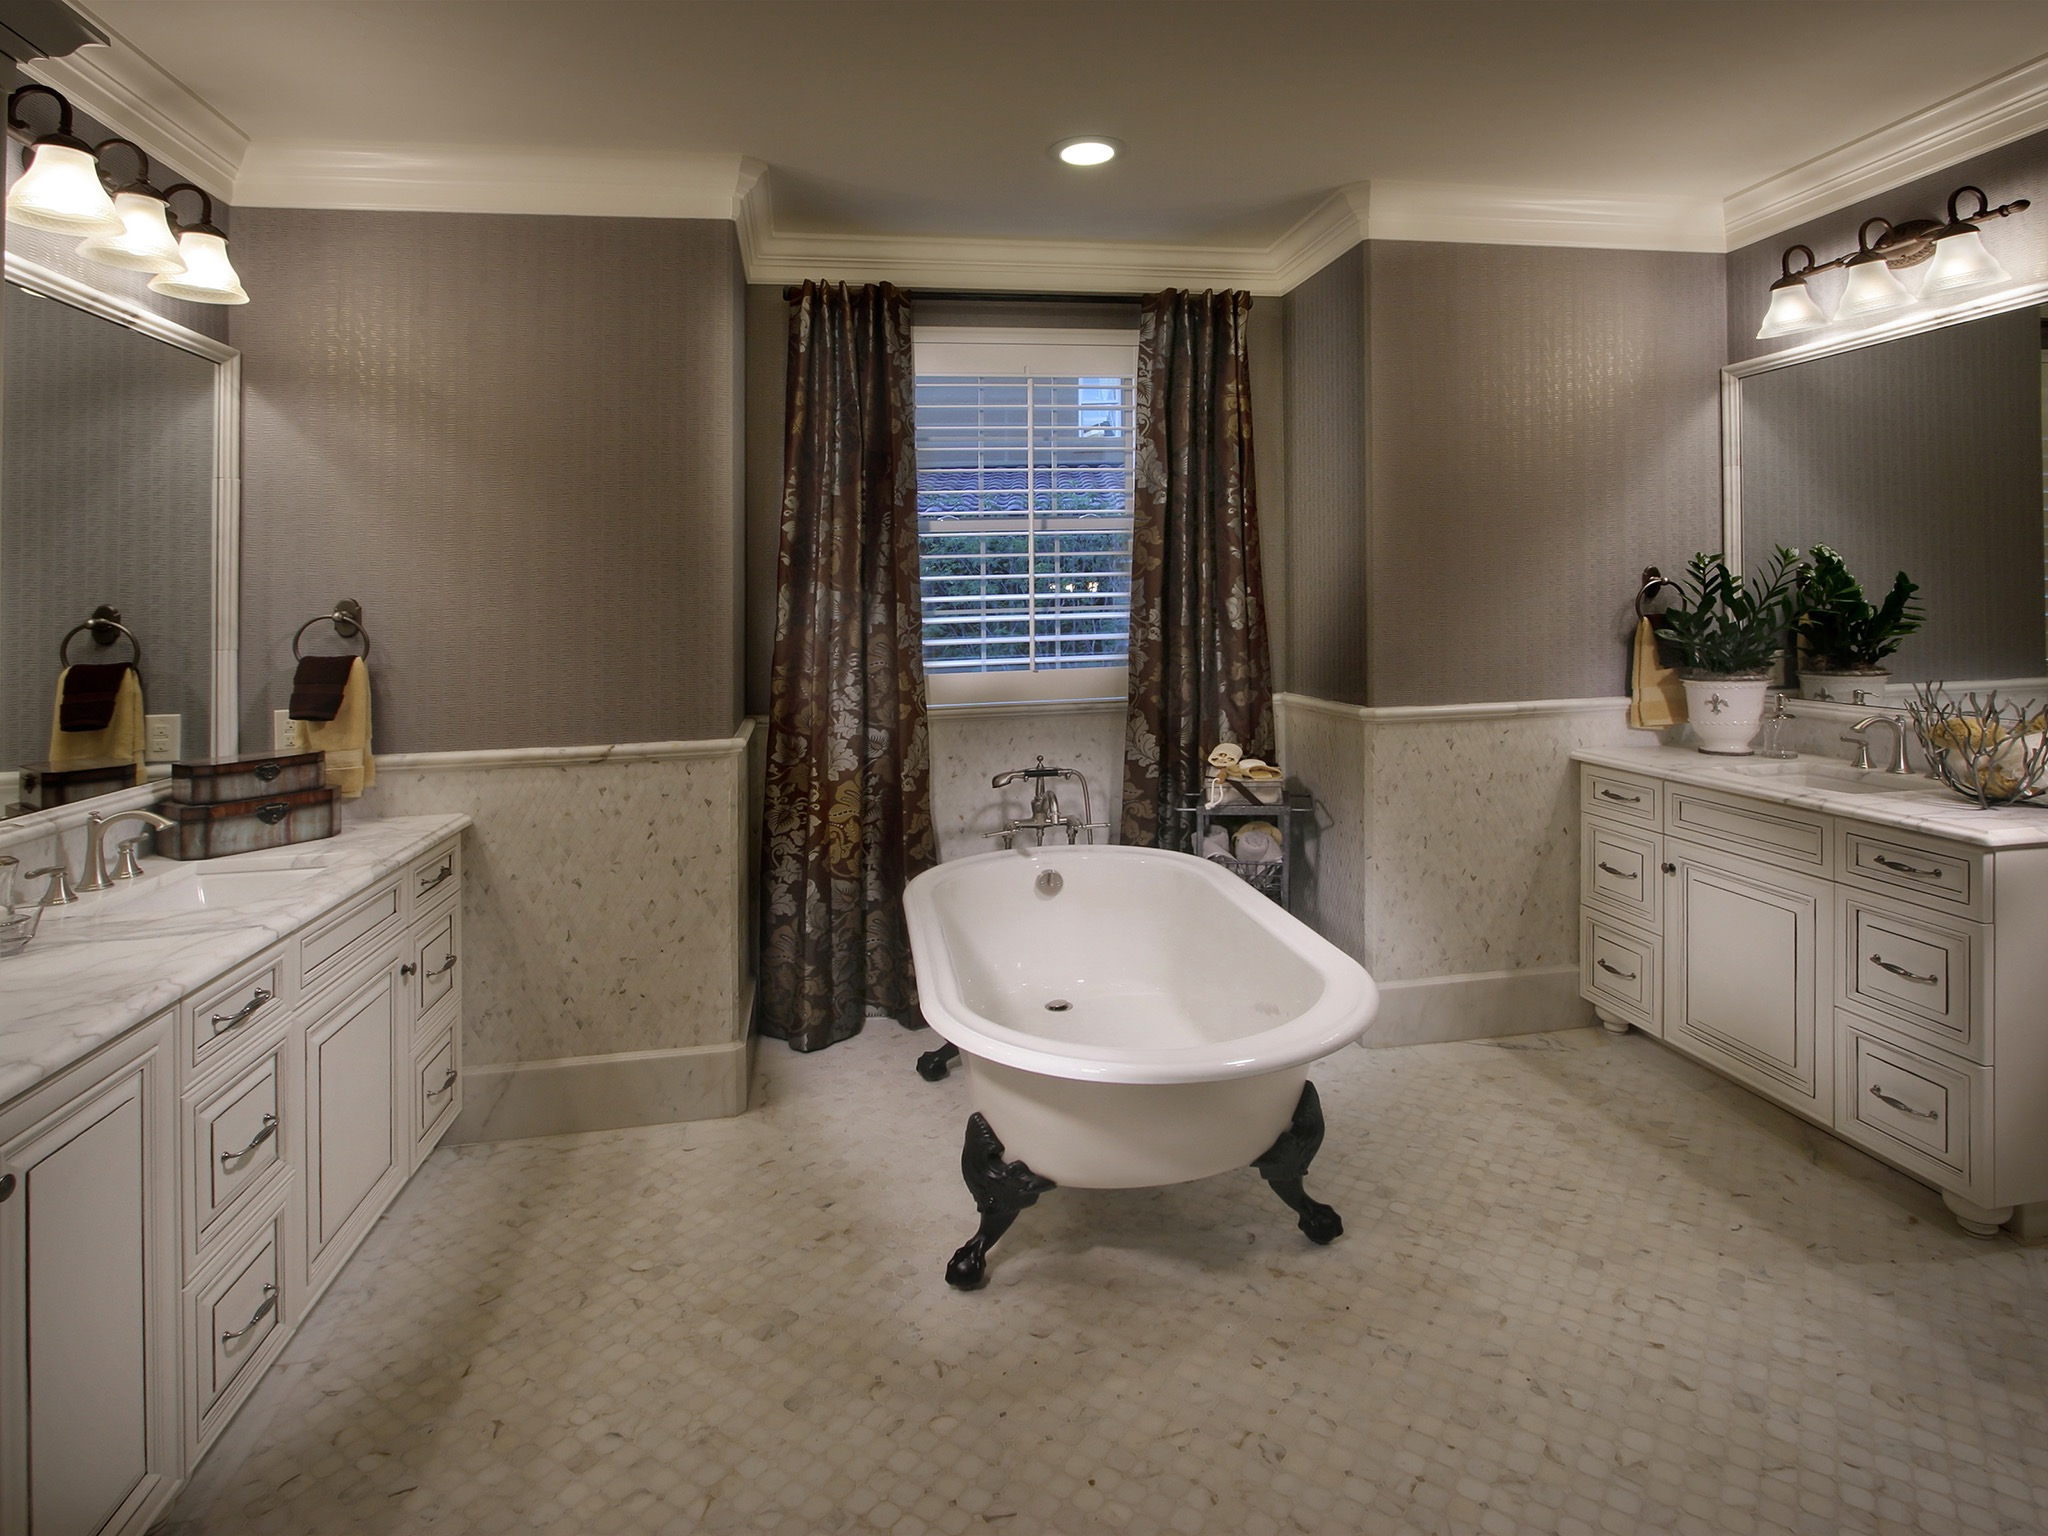 Marble Countertops For Classic Bathroom Interior With Full Length Curtains And Two Spacious Vanities (Image 24 of 29)